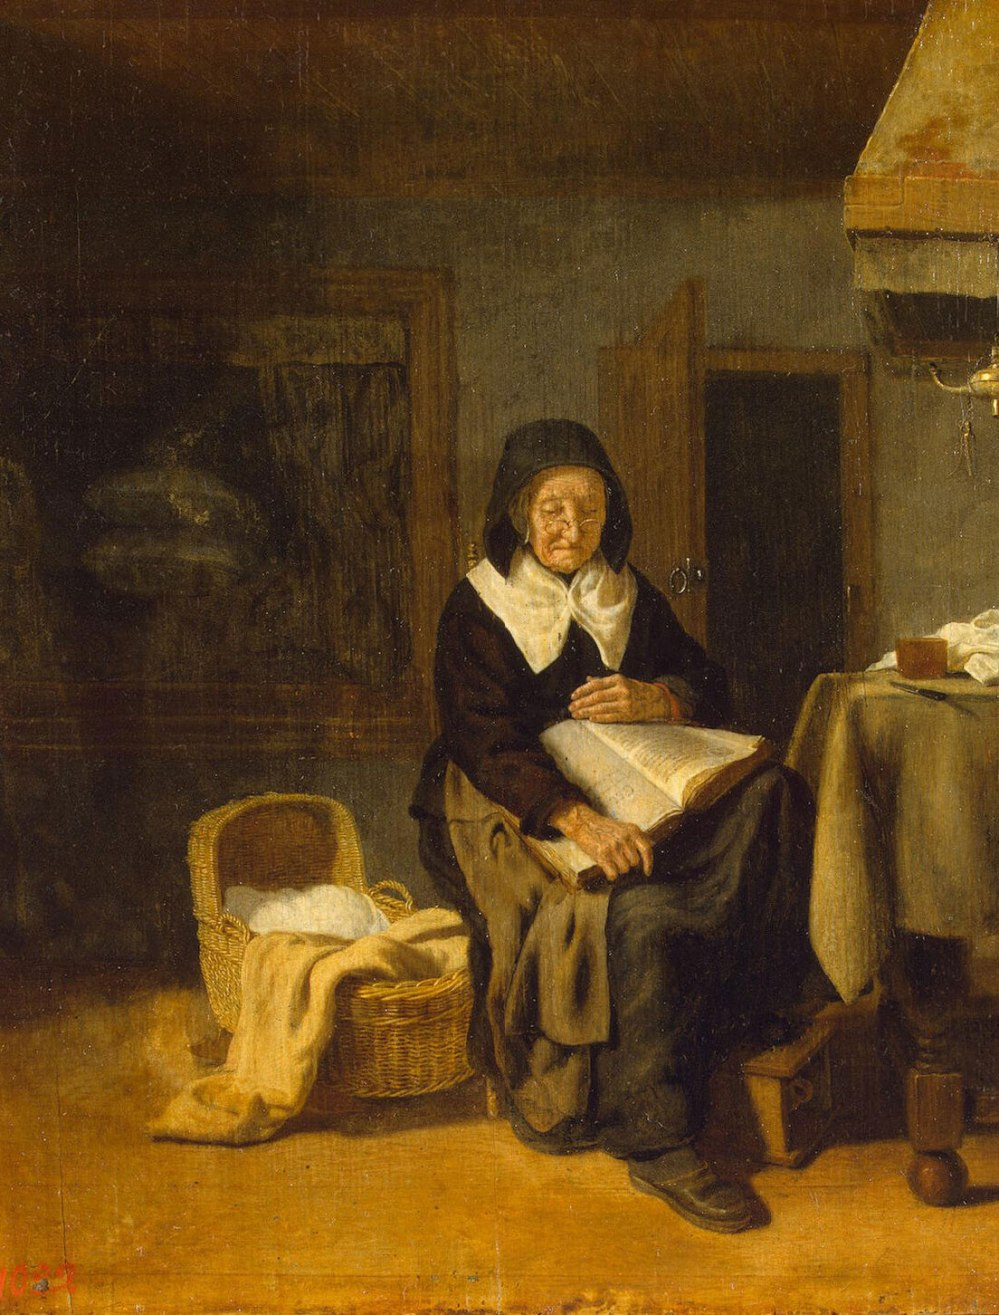 Bos_Pieter_van_den-ZZZ-Old_Woman_Reading_a_Book